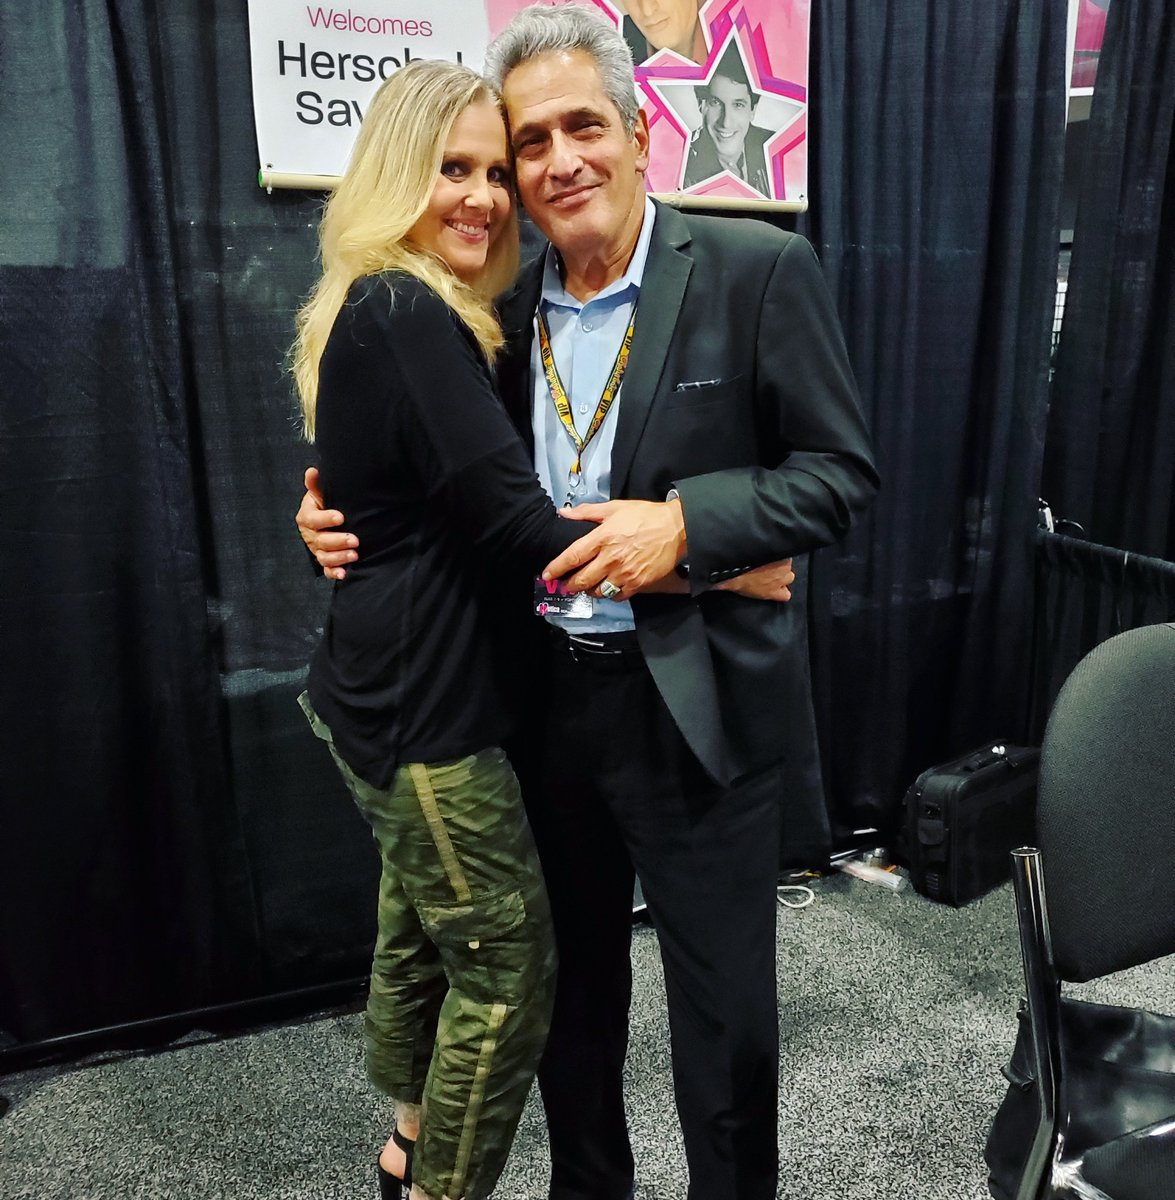 Hanging out with adult film legends @msjaninelinde @ChristyCanyon11 and Herschel Savage, @EXXXOTICA Portland Oregon. Come see us today and Sunday